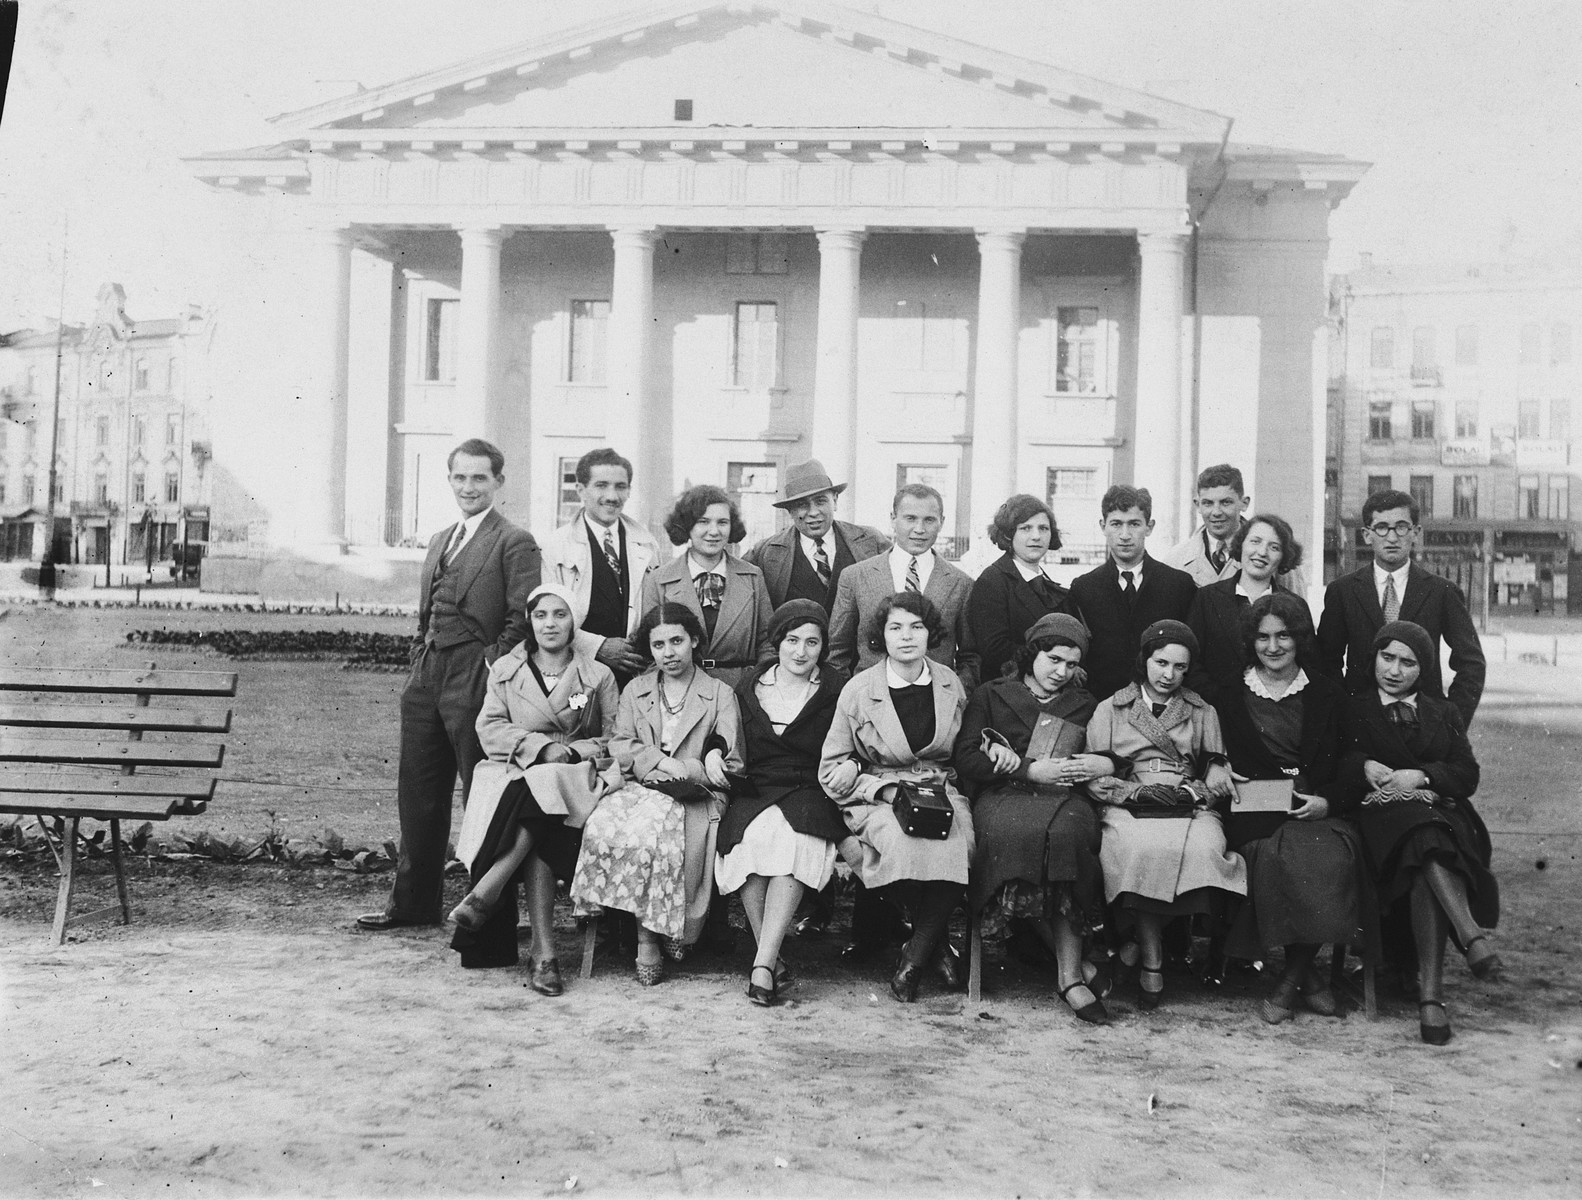 Group portrait of students of the Yiddish gymnasium in Vilna.  Among those pictured is Emma Puzarisky (front row, third from the right).